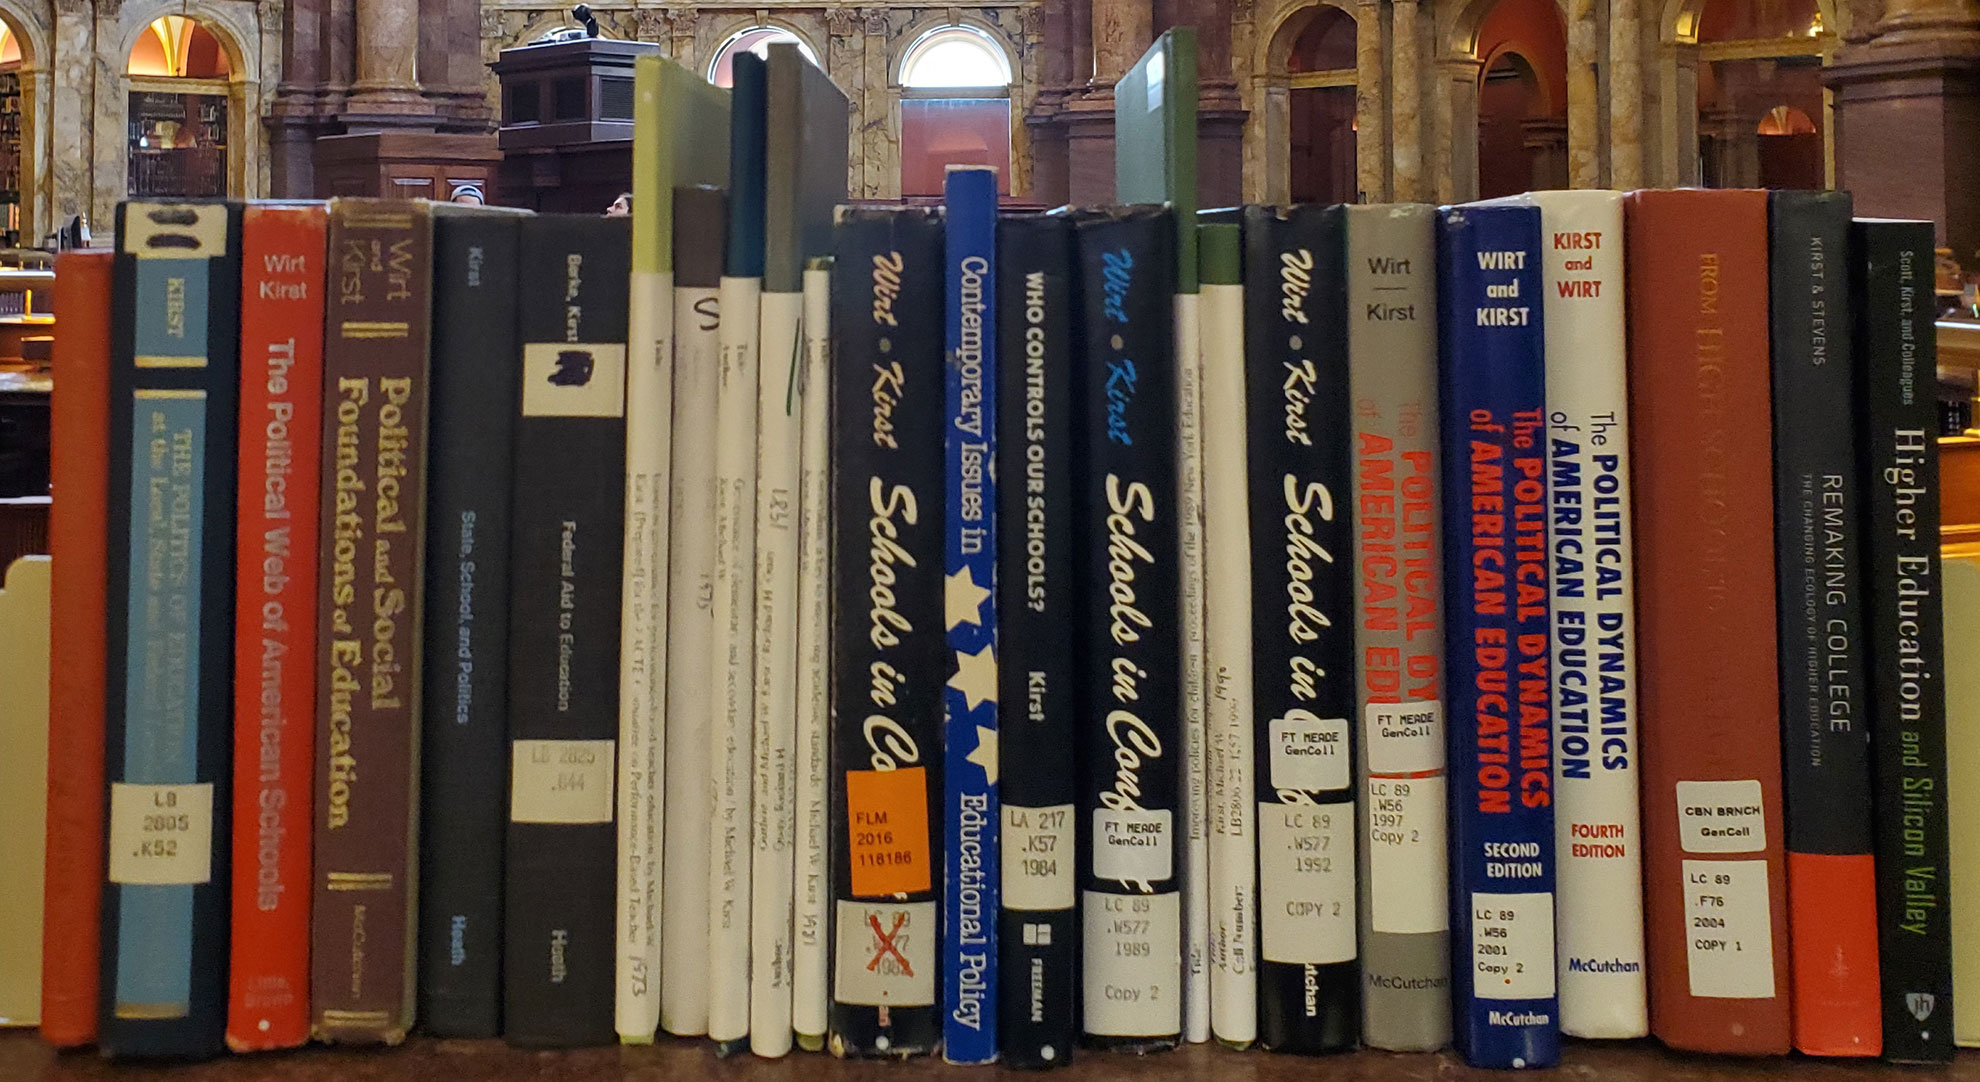 Book Collection of Stanford Professor Emeritus Mike Kirst Books Library of Congress